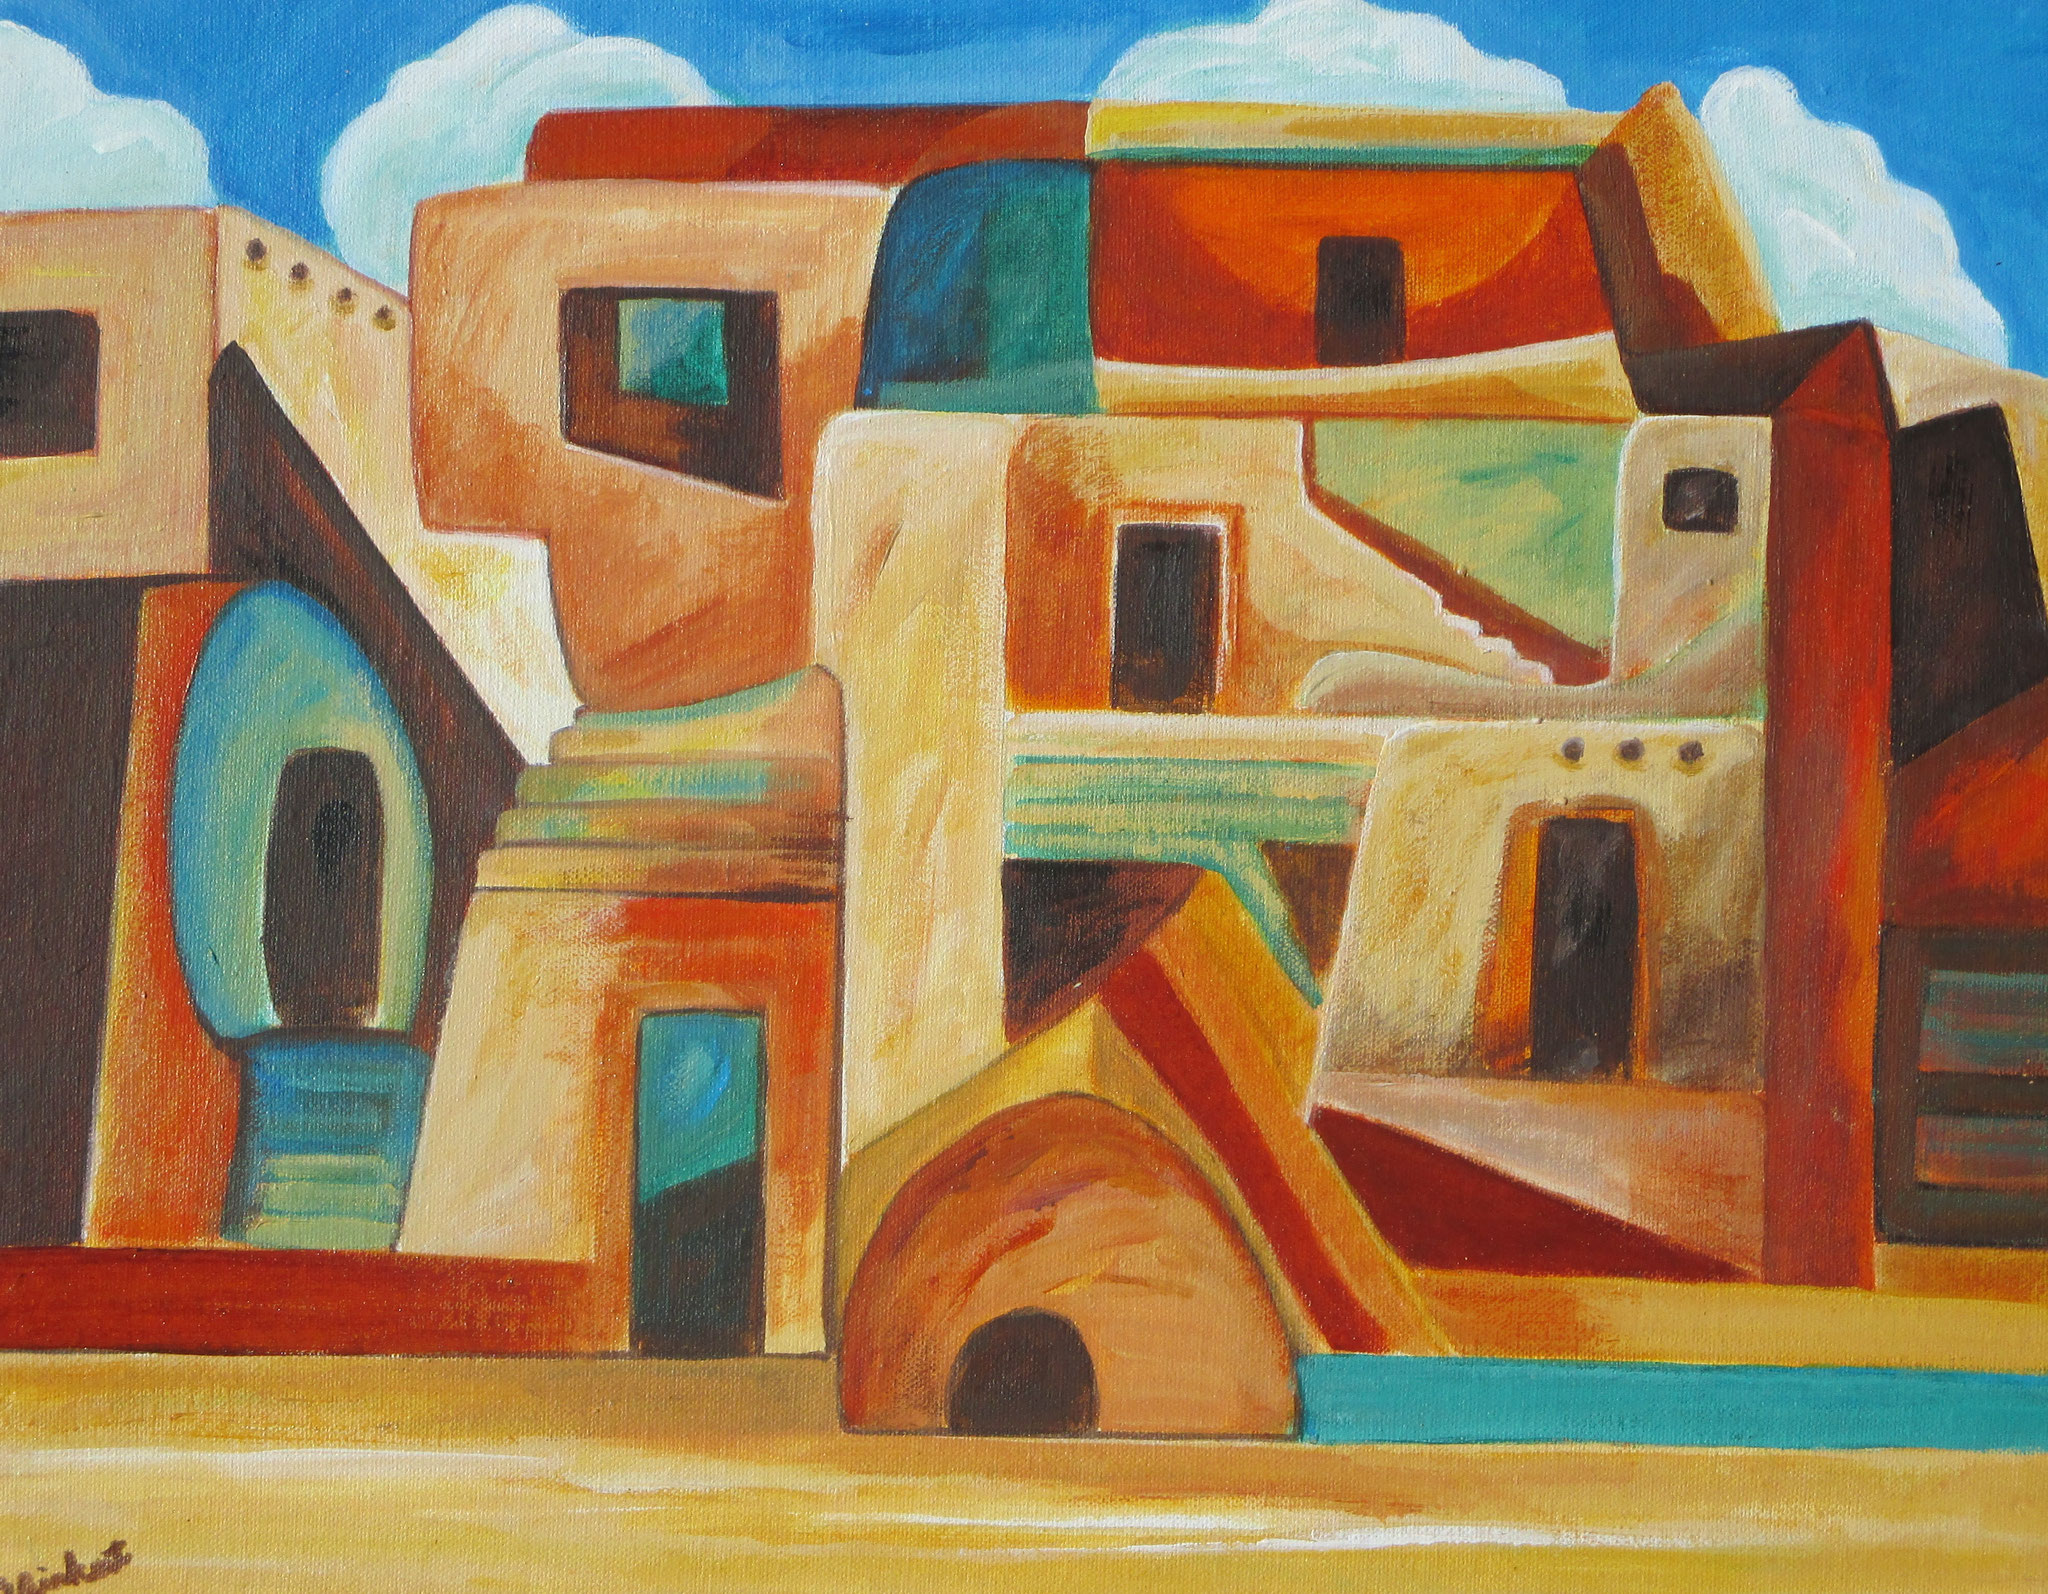 Cliff Dwellings, oil on canvas, 18 x 24, 2015